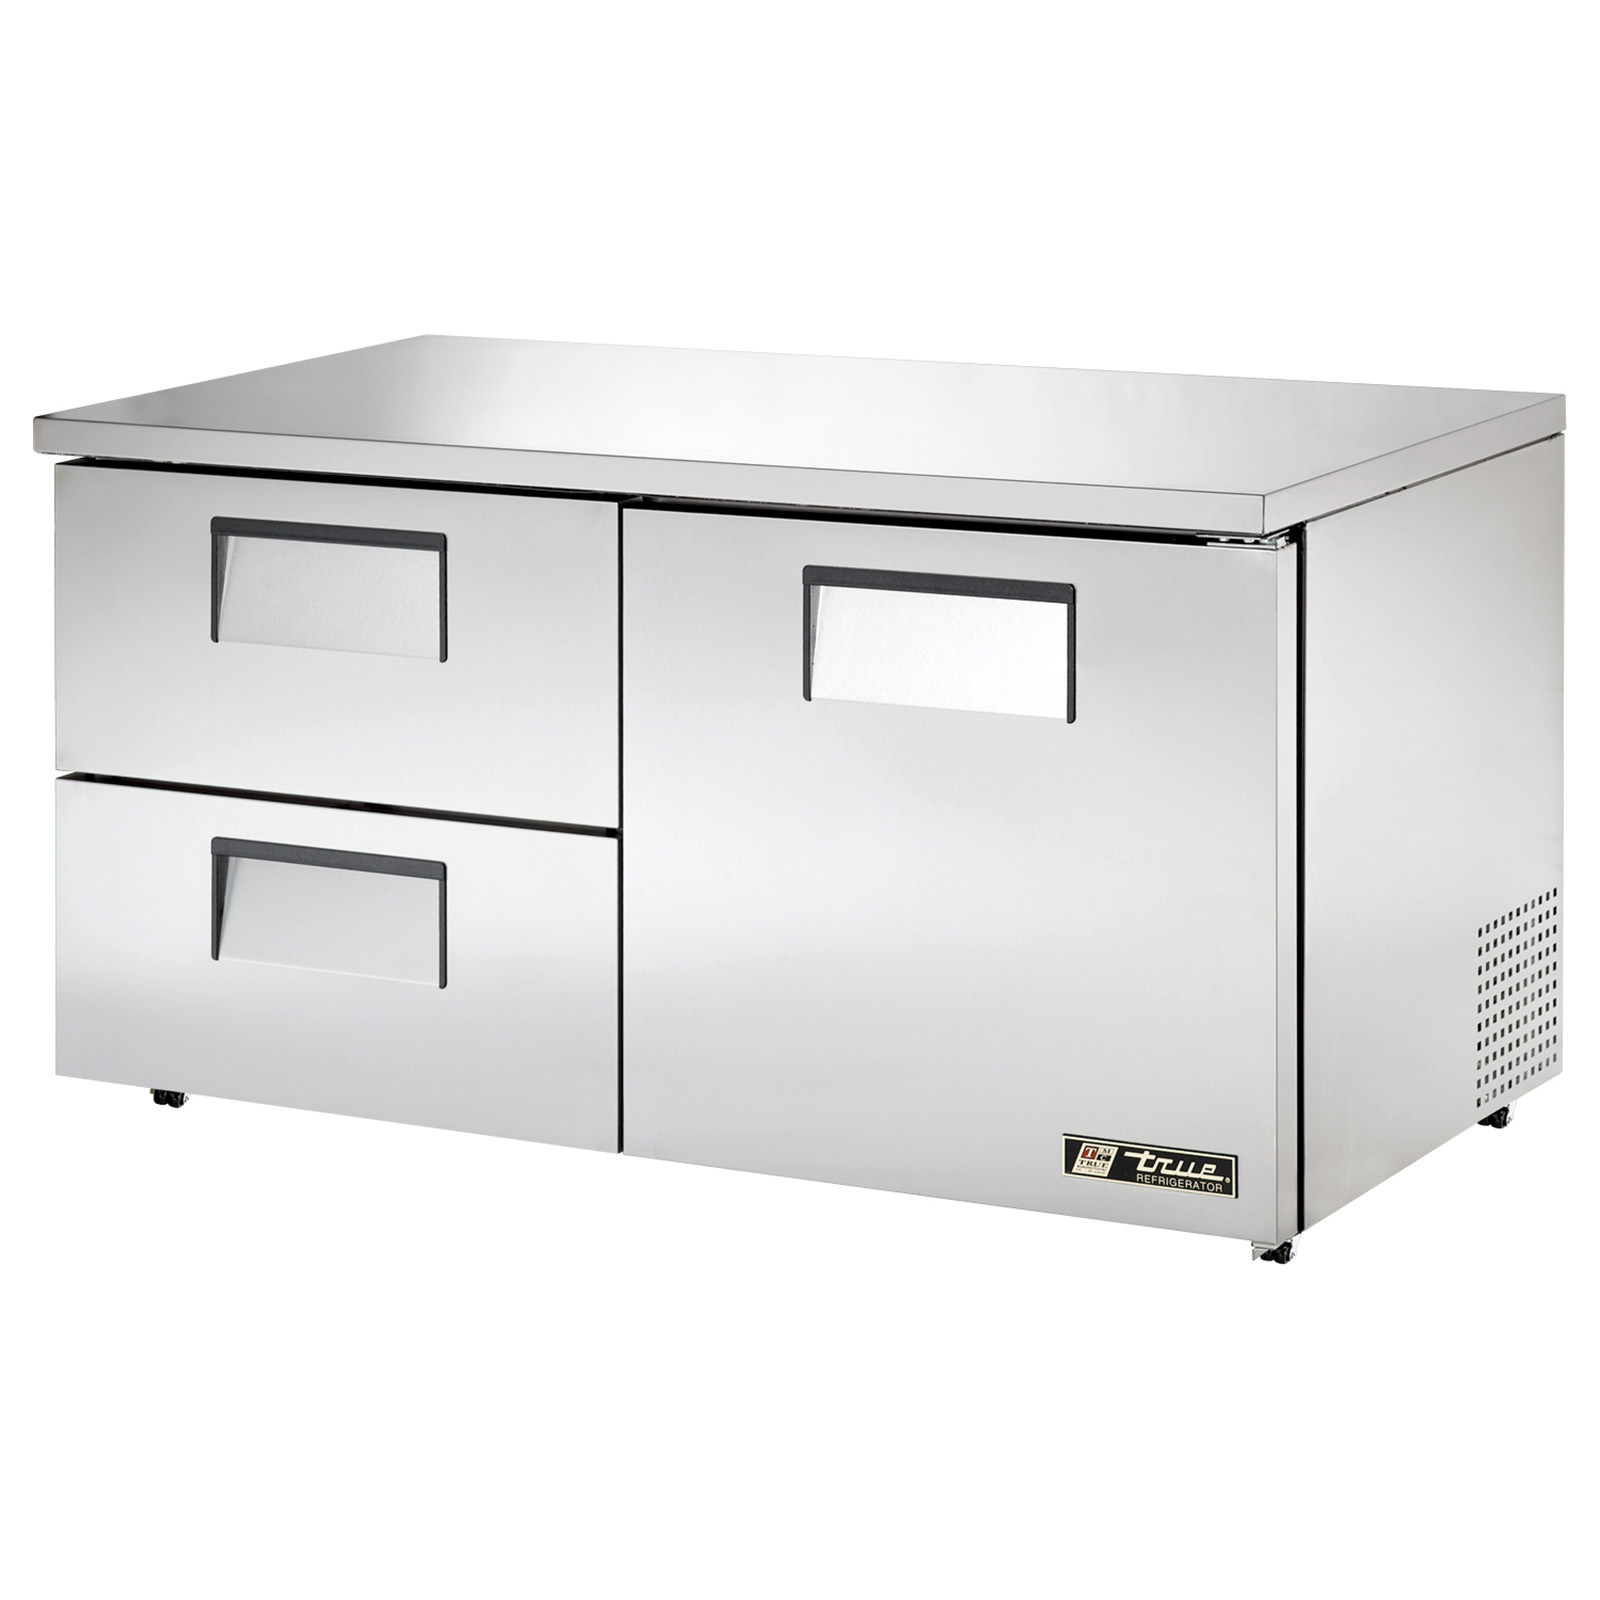 TUC-60D-2-LP True - Low Profile Undercounter Refrigerator 33-38? F